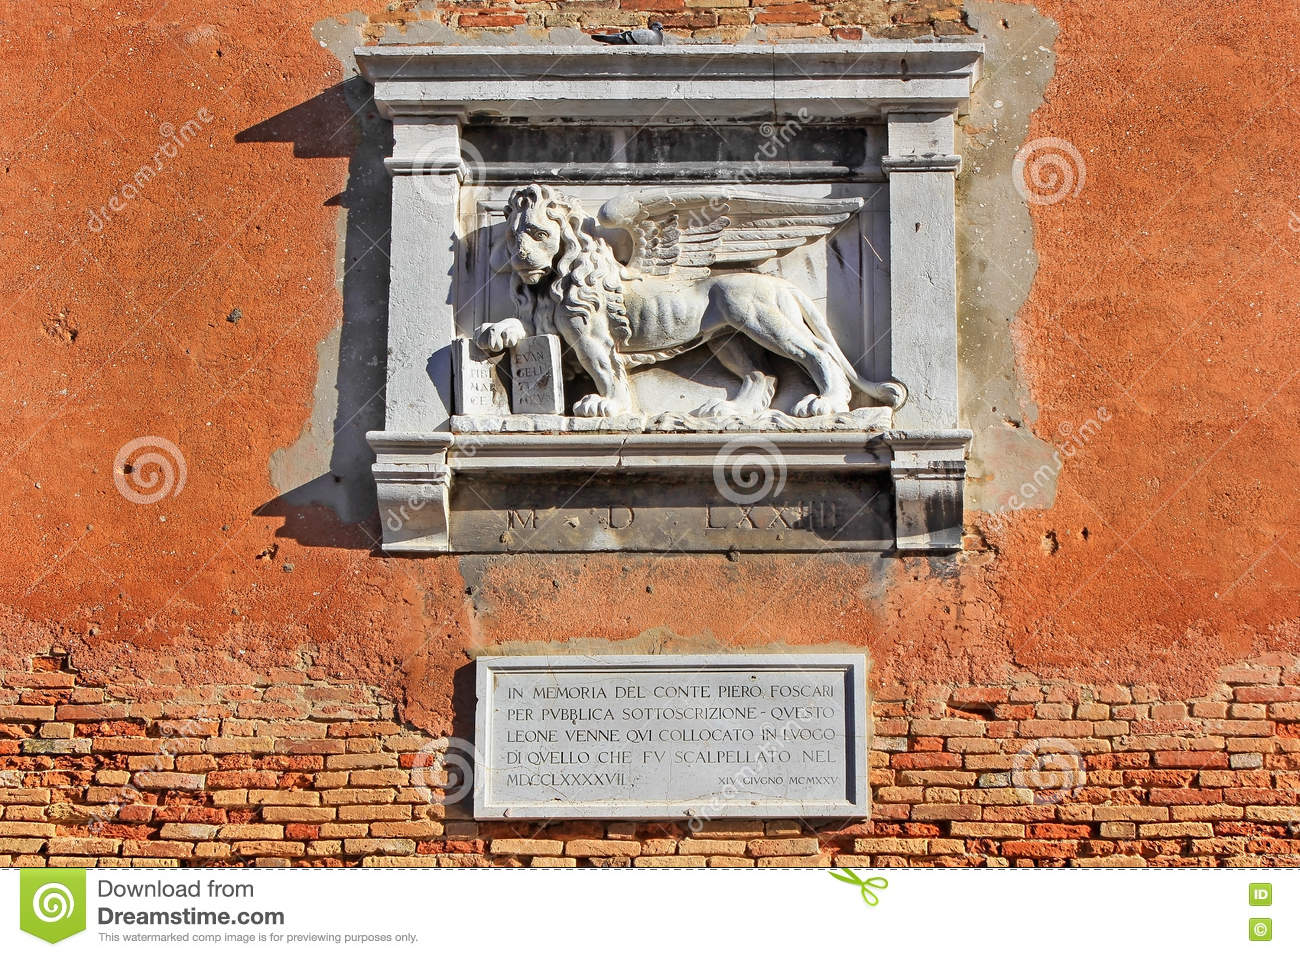 Symbol of Venice, the winged lion of St. Mark